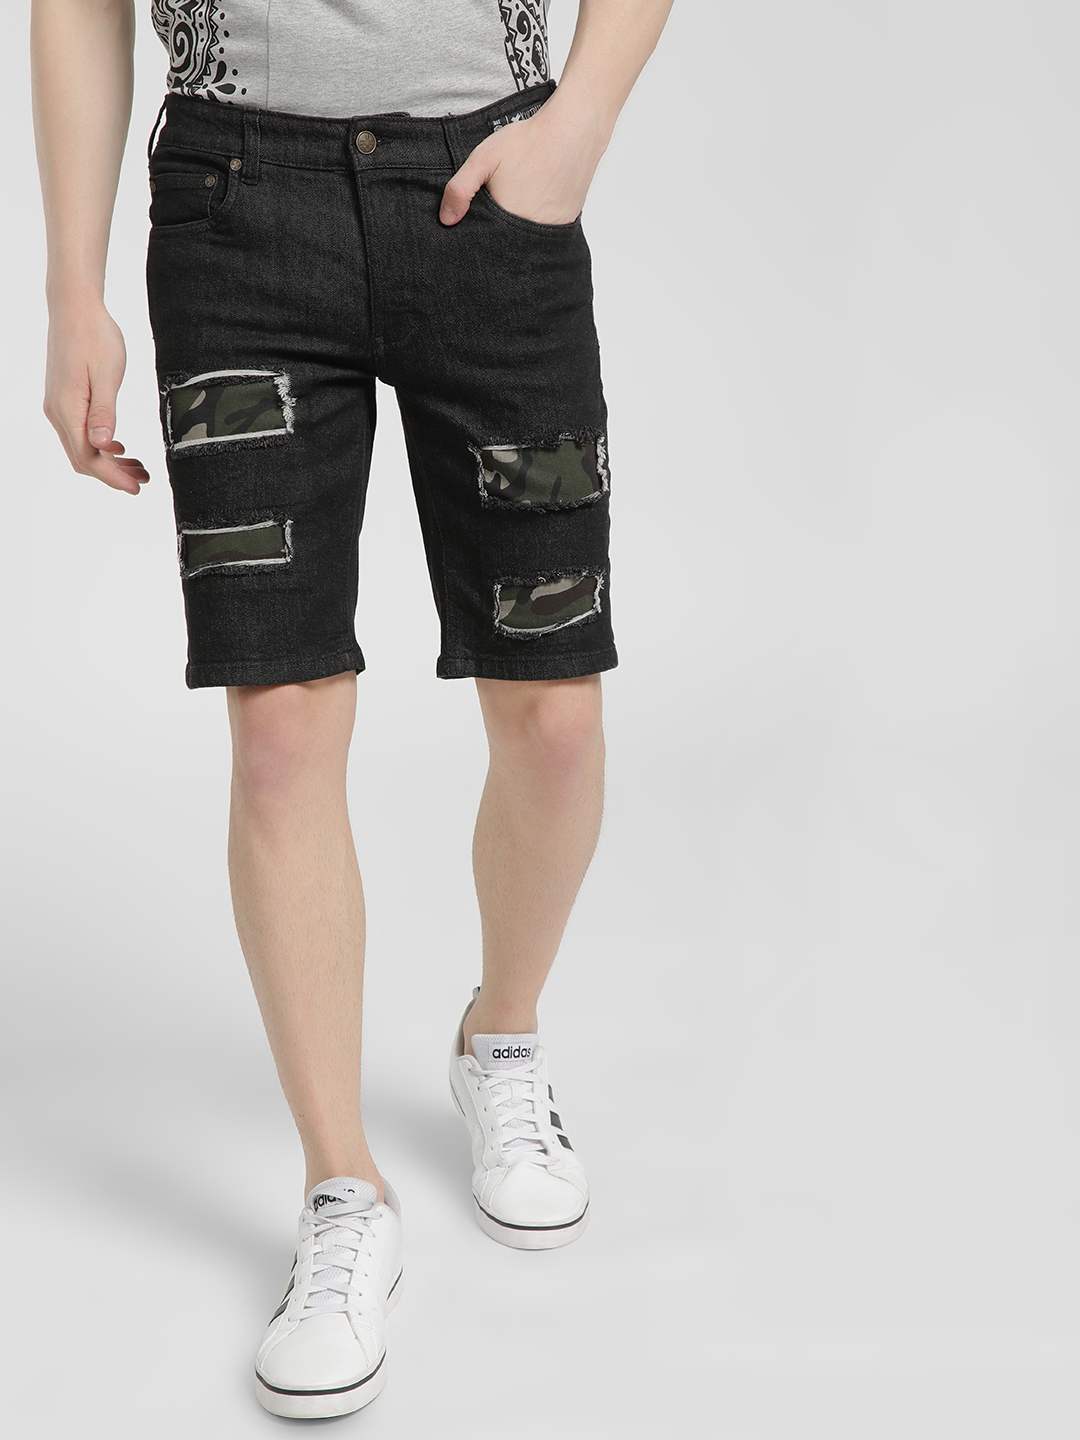 Kultprit Black Dark Wash Distressed Camo Patch Shorts 1